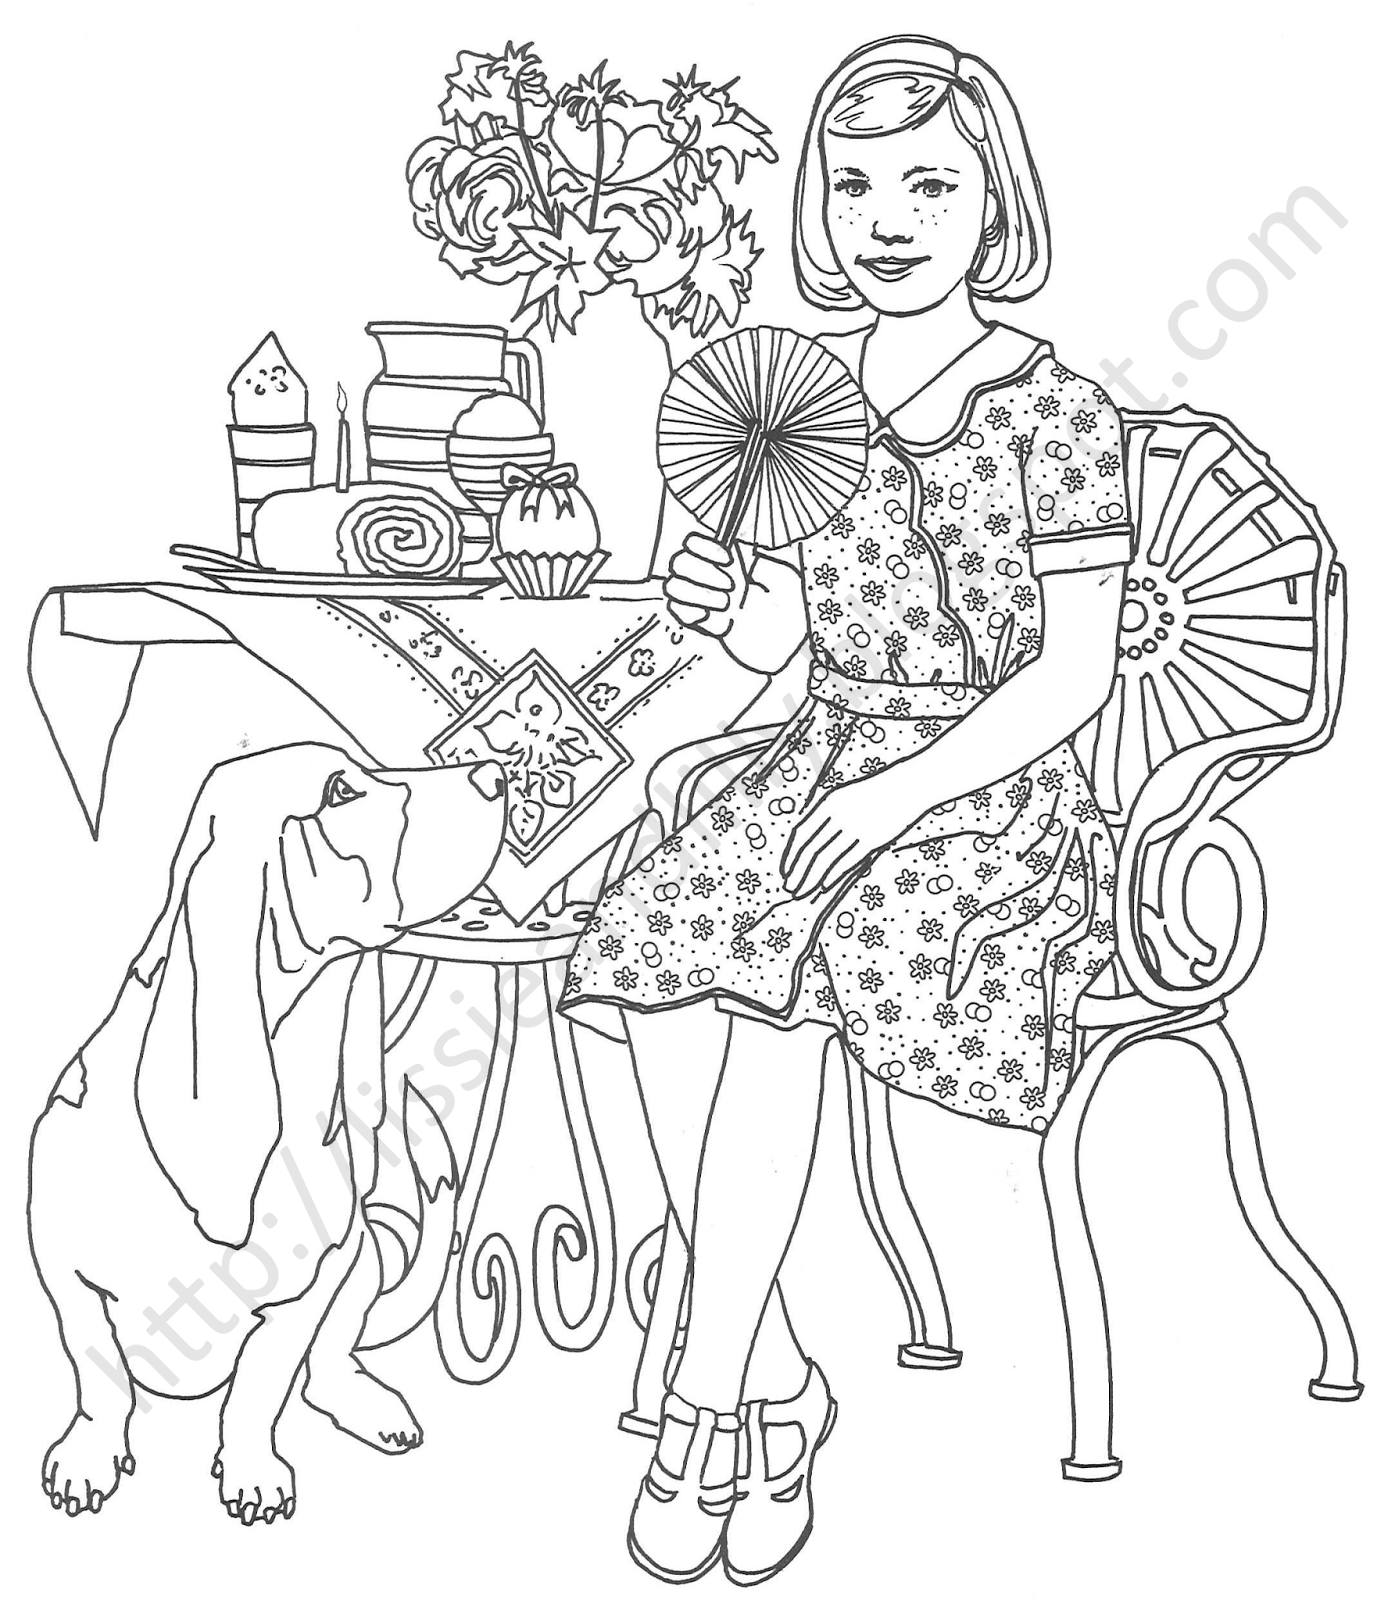 makayla coloring pages - photo#11